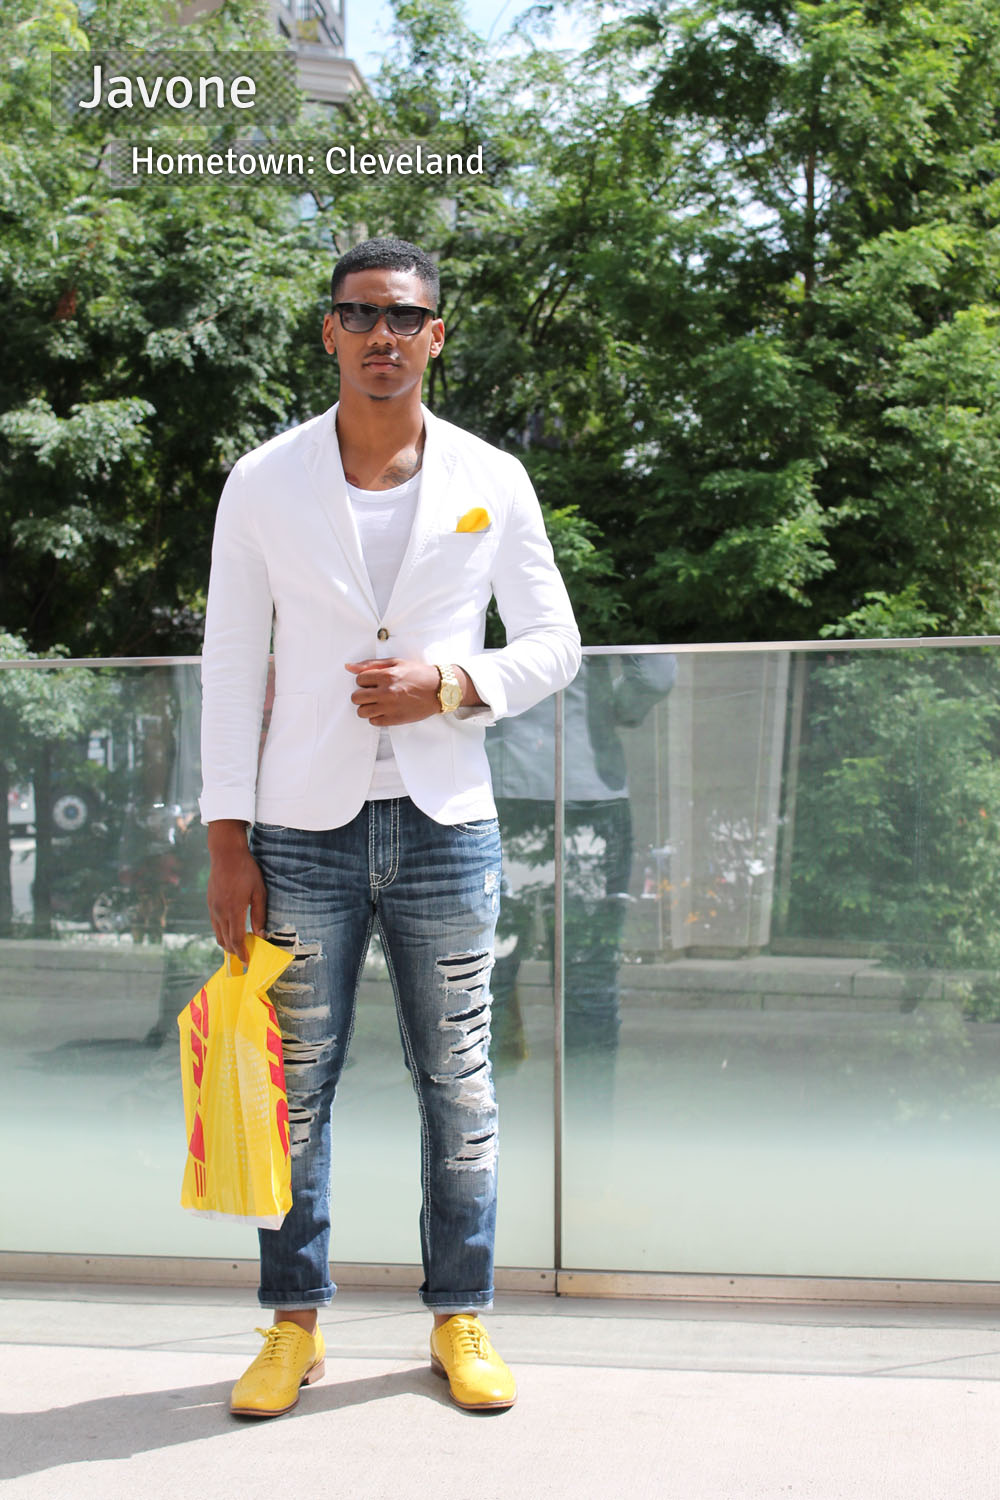 Corra's New York Fashion Week Street Style Blog | Day 1 - Javone from Cleveland